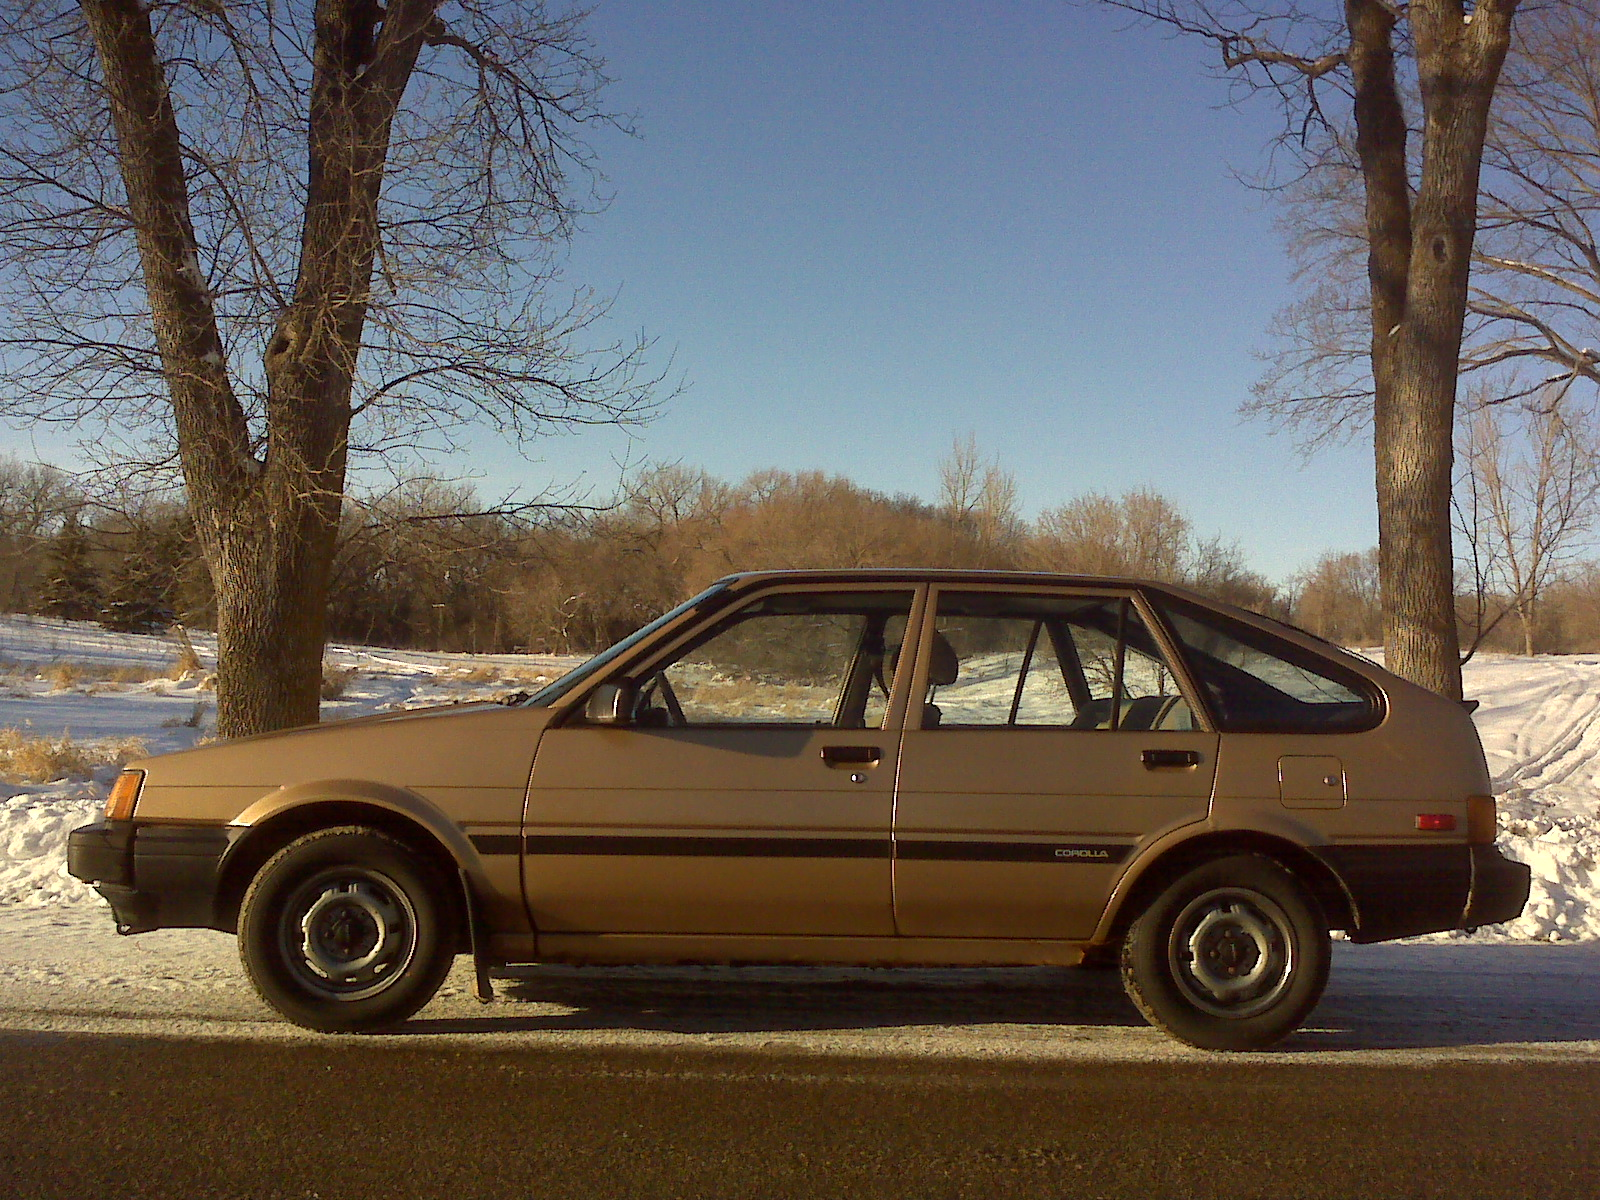 1984 Toyota Corolla at 550,601 Miles